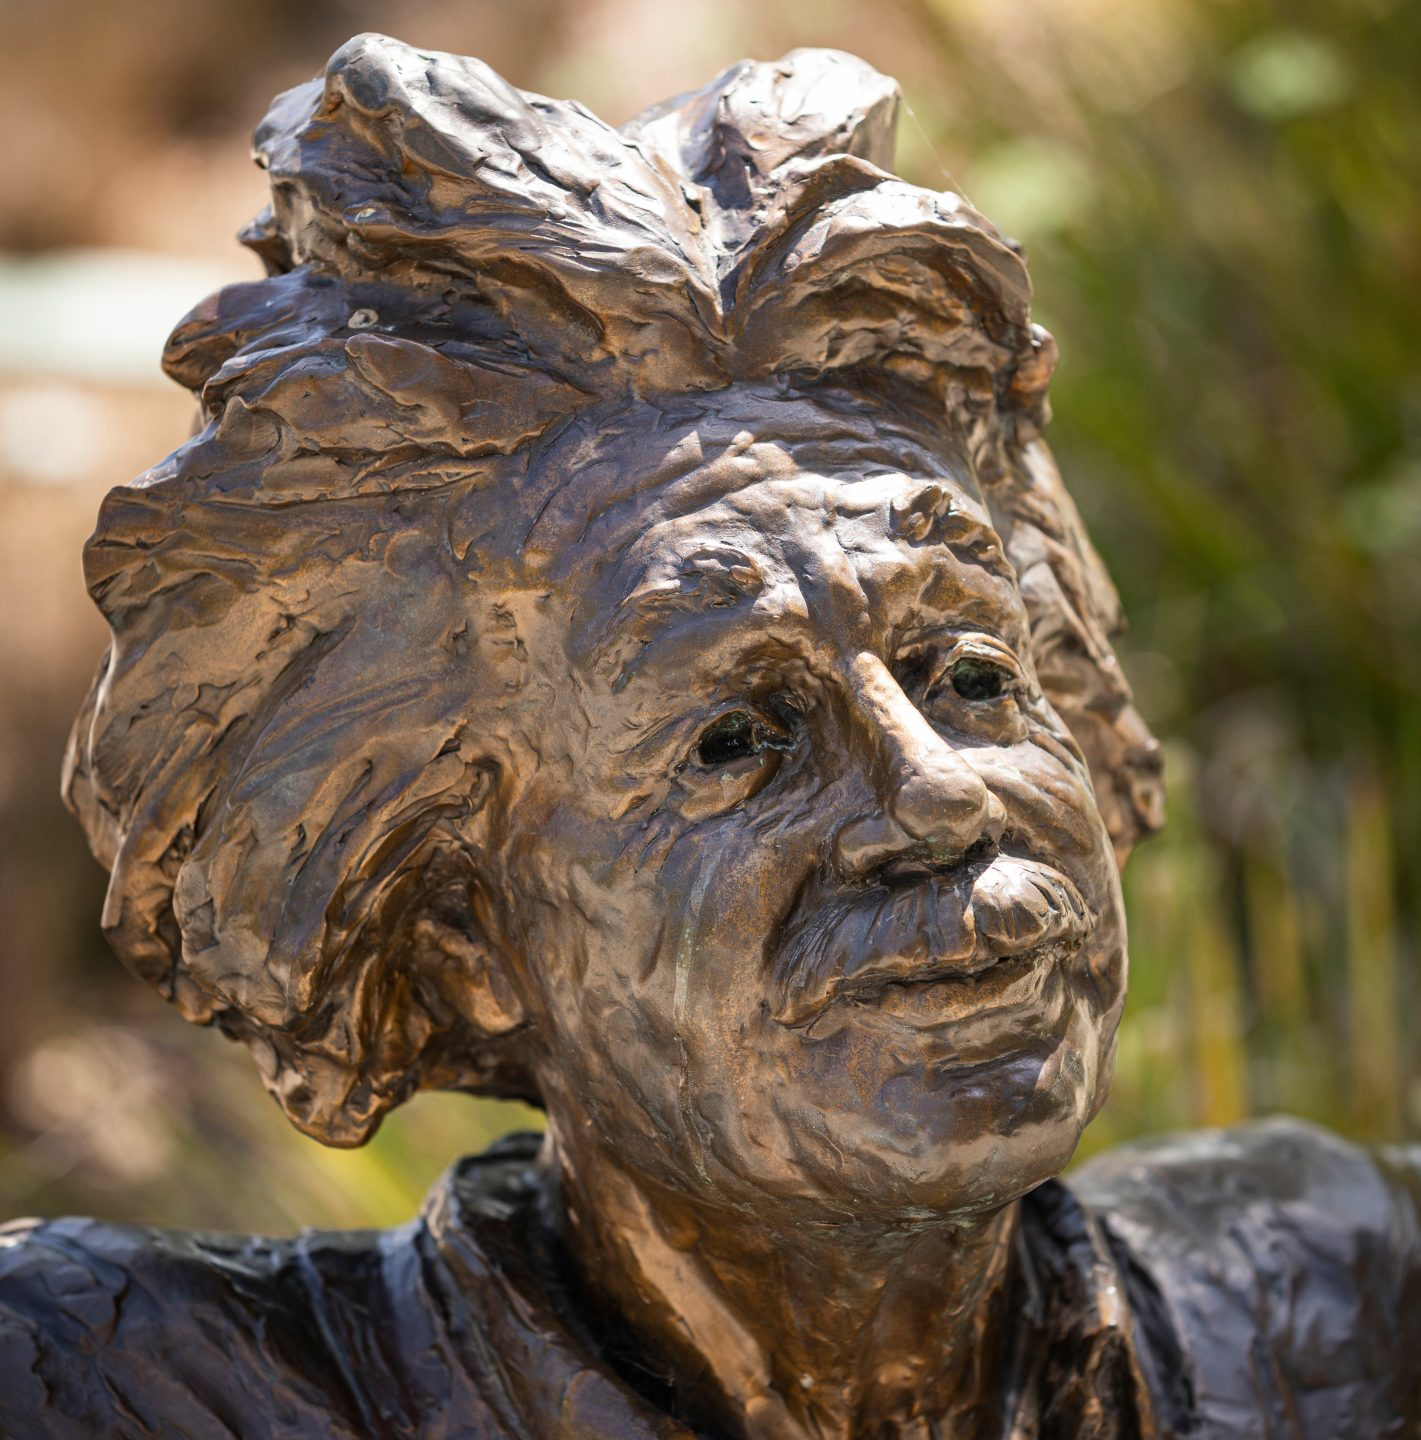 The face of a bronze statue of Albert Einstein